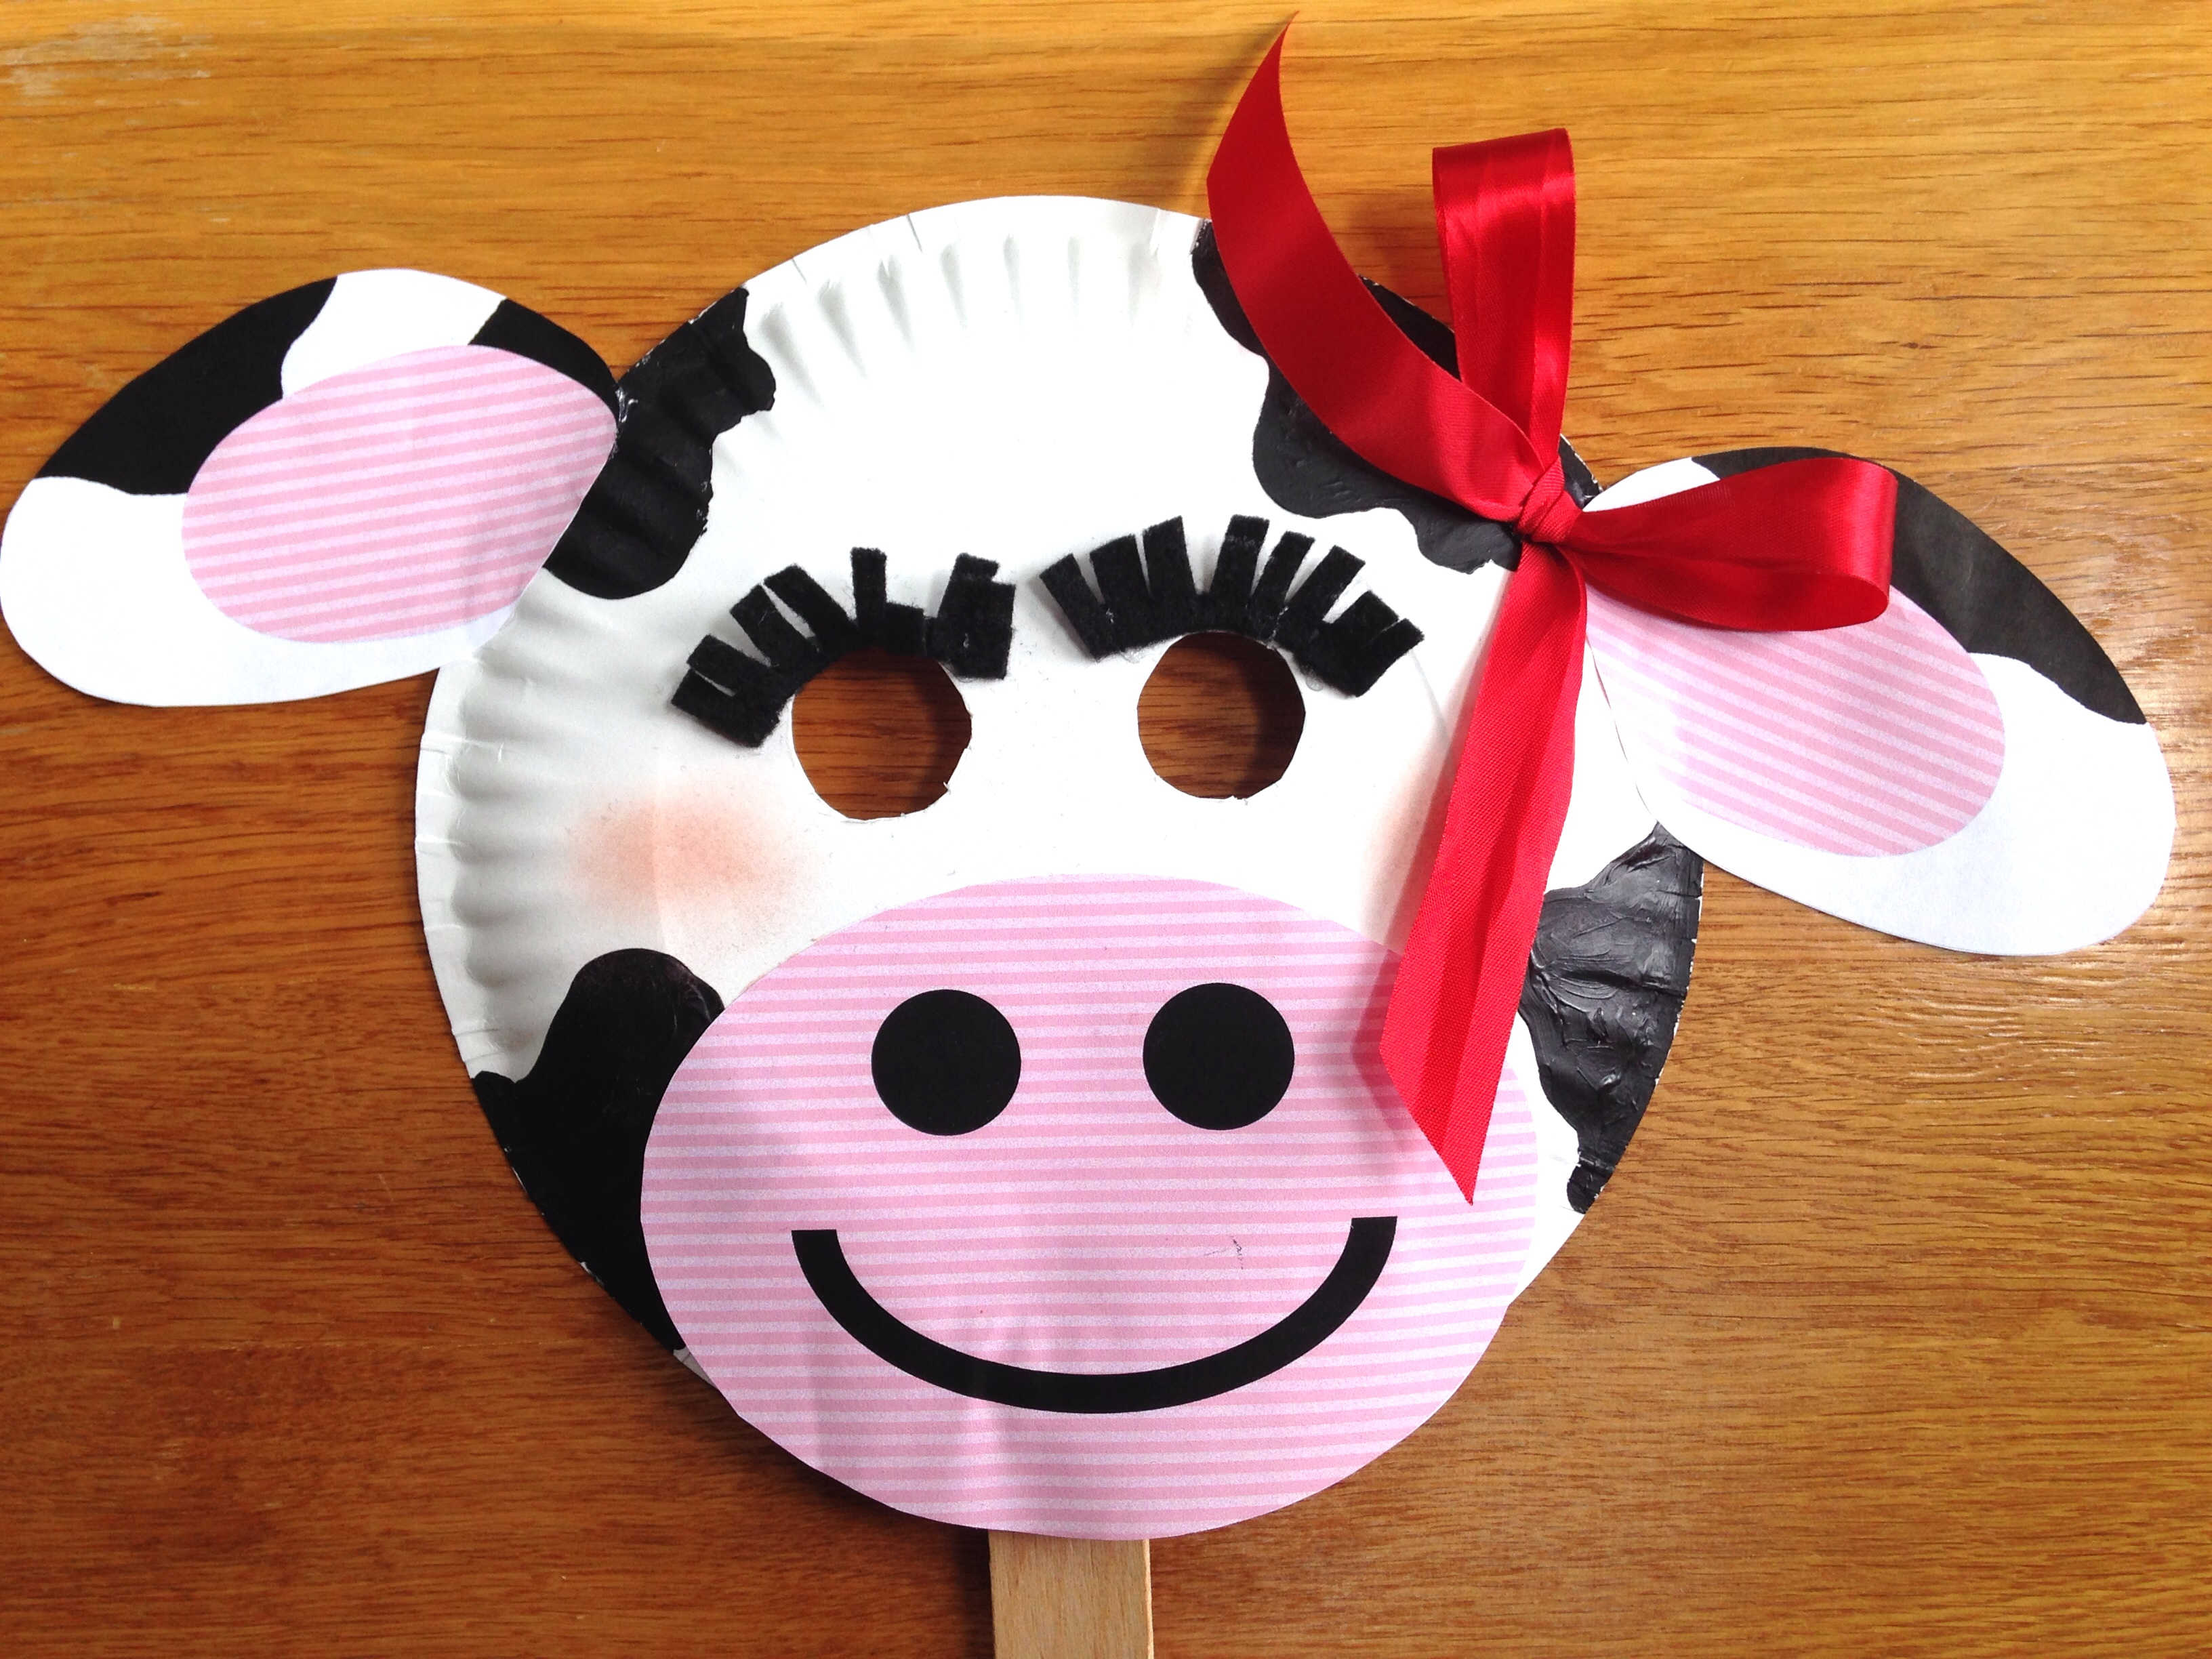 graphic relating to Printable Cow Mask named Chick-fil-A Cow Working day Paper Plate Cow Masks With Cost-free